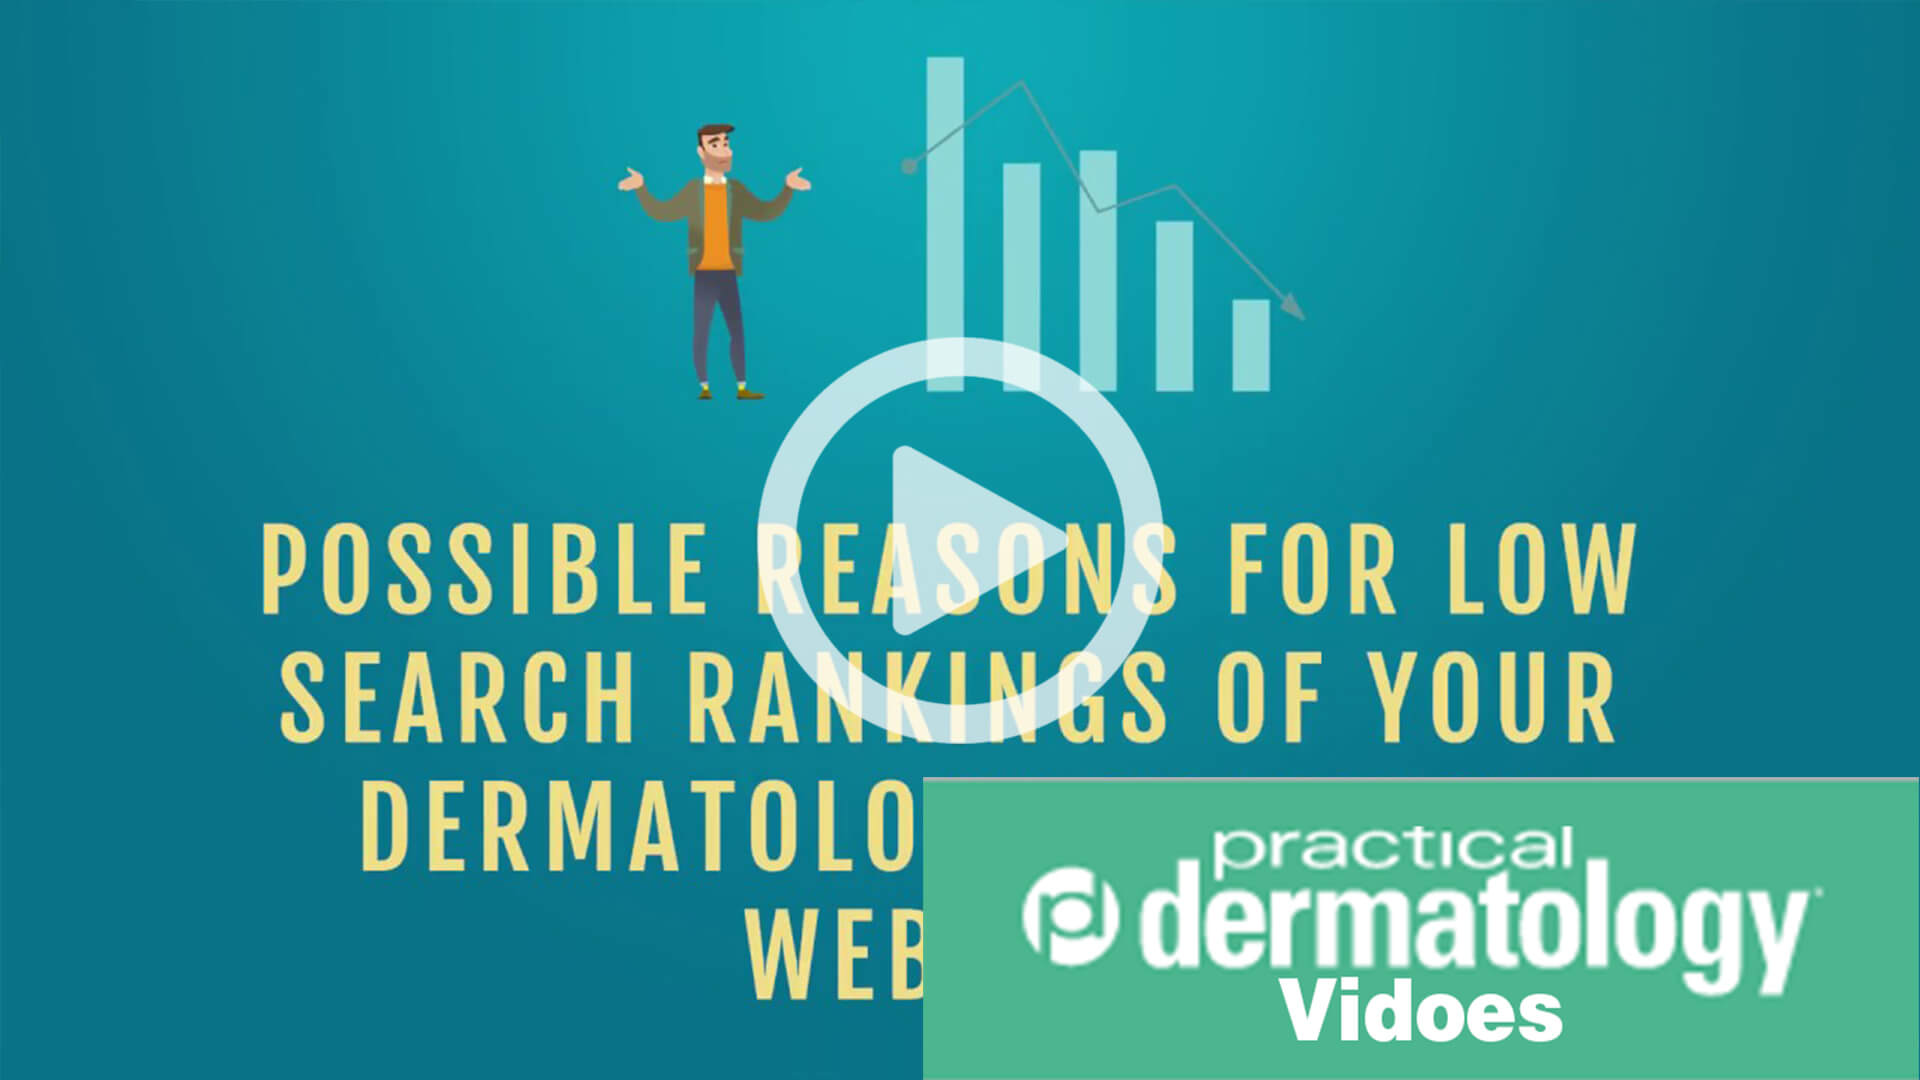 Proven Methods to Maximize Use of Google Webmaster Tools for Your Dermatology Website